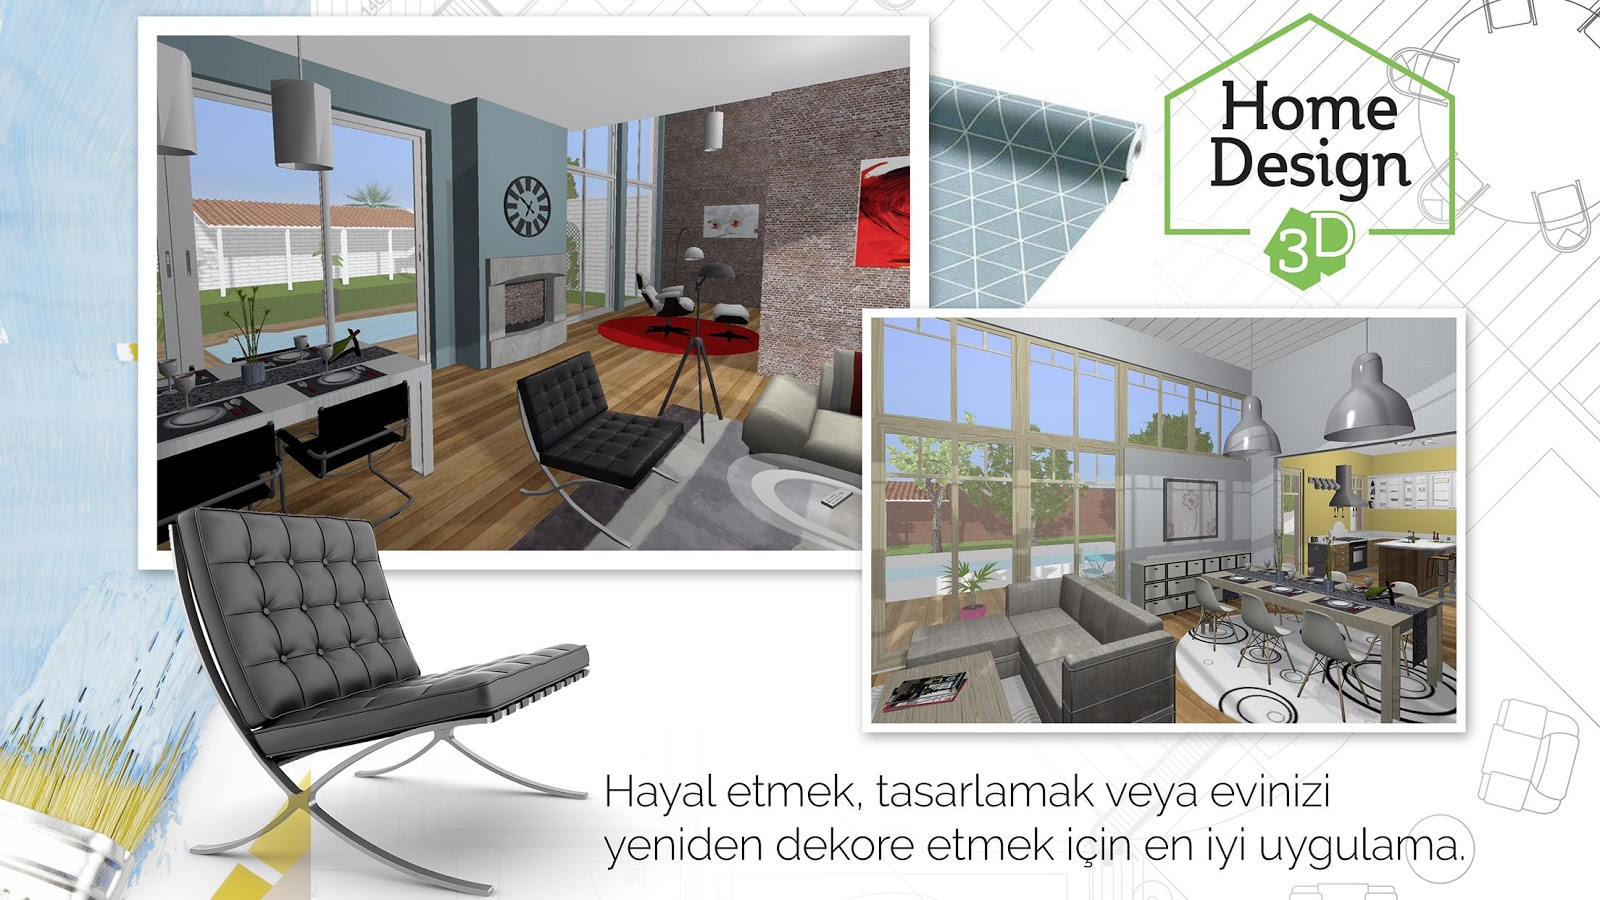 Home design 3d freemium google play 39 de android for Design di architettura domestica gratuito